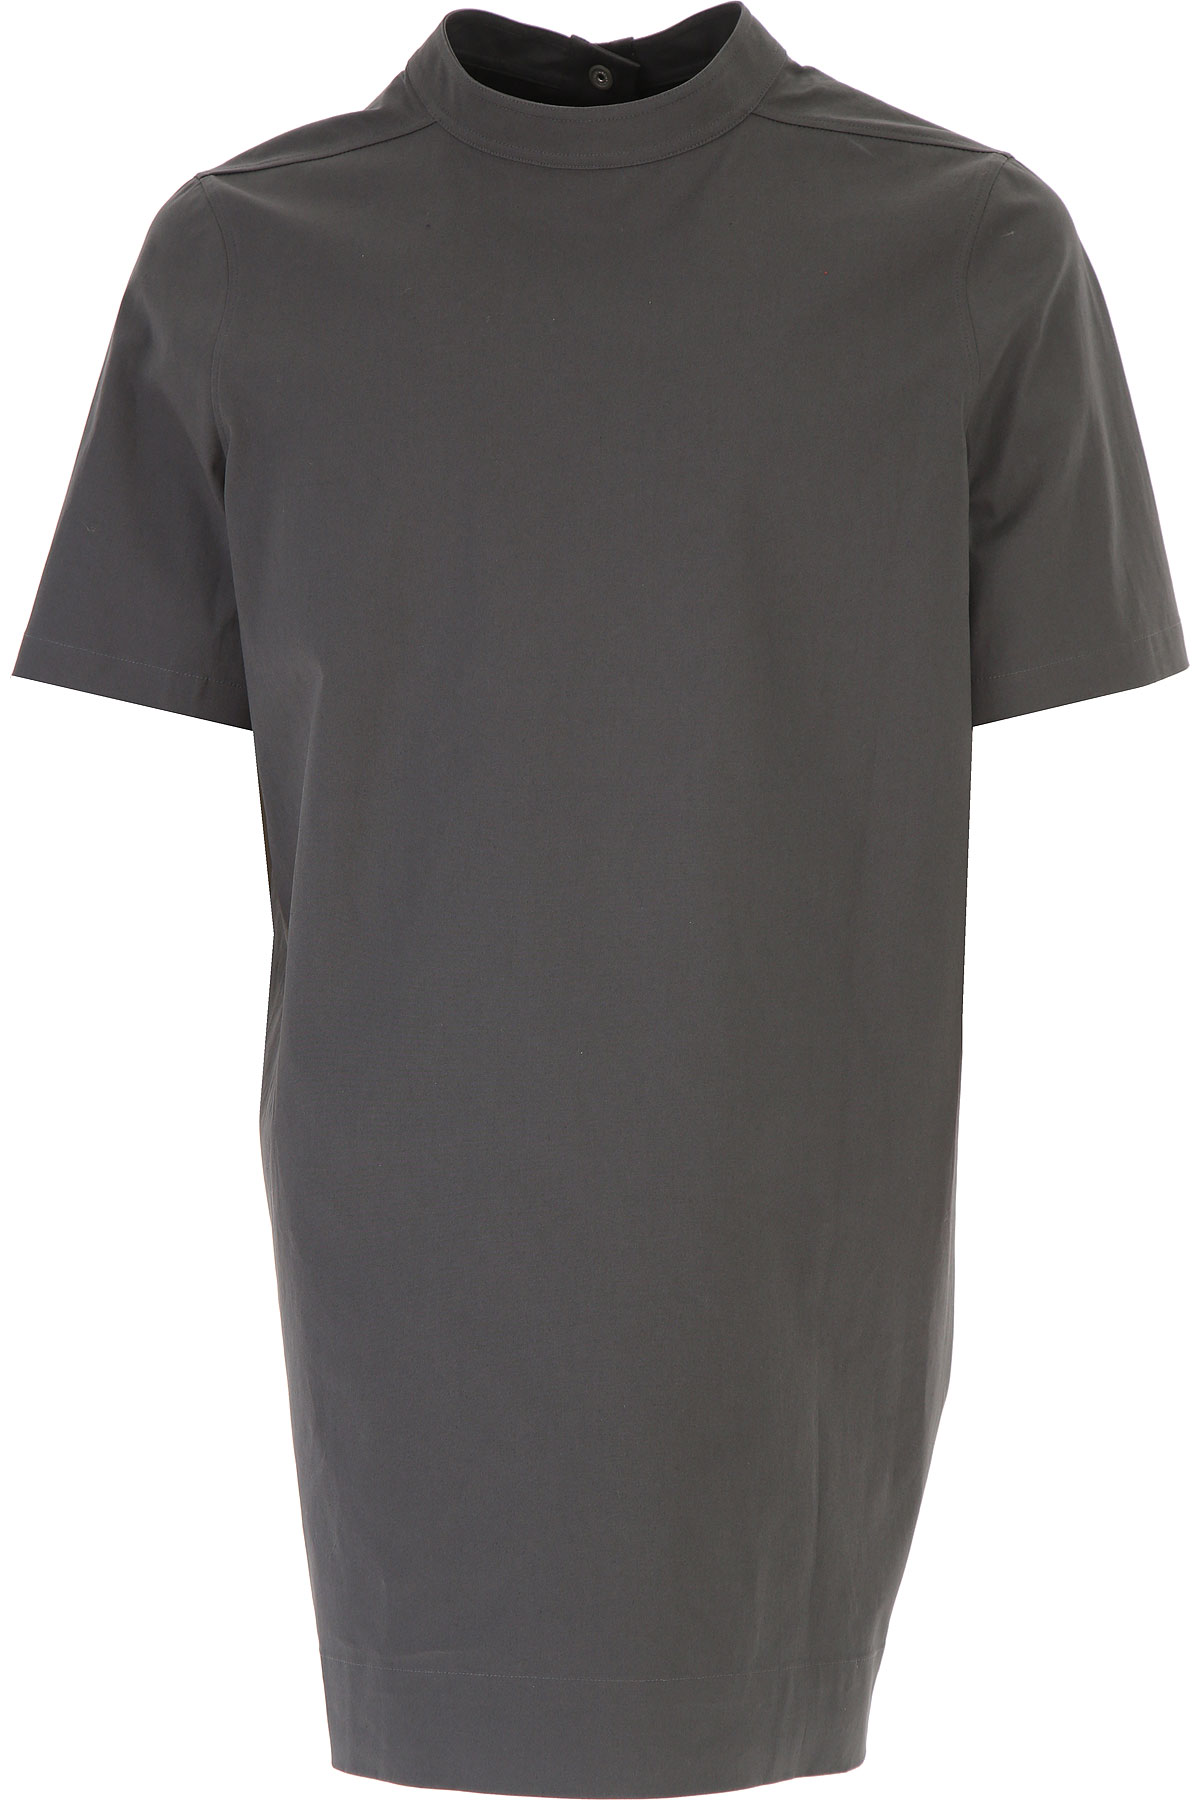 Rick Owens T-Shirt for Men On Sale in Outlet, Iron, Cotton, 2019, L M S